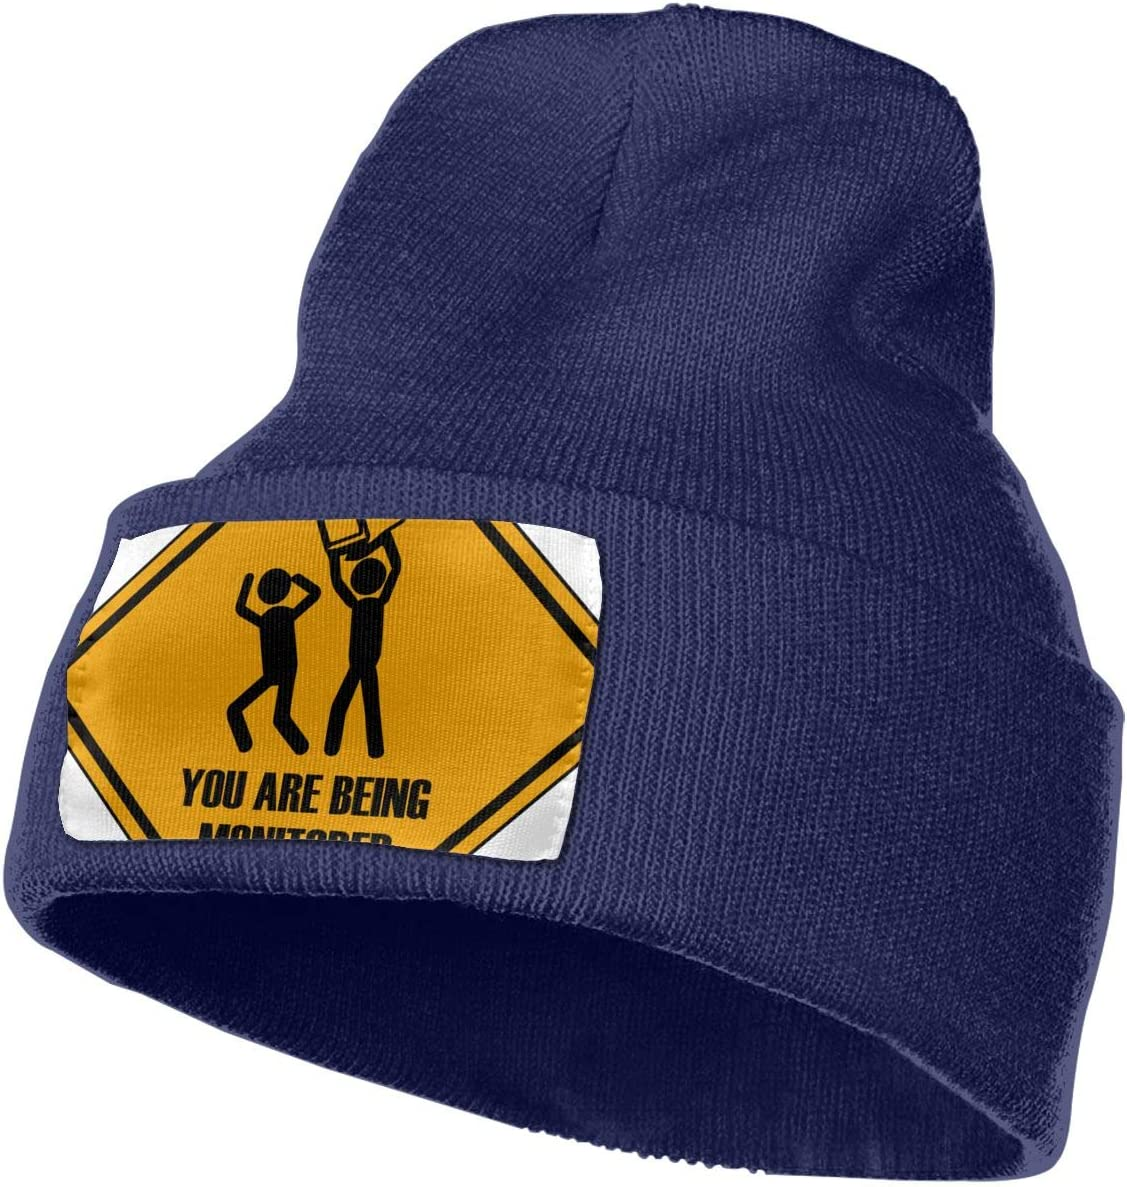 Thick MACA You are Being Monitored Unisex Slouch Beanie Hats Warm /& Stylish Winter Hats Black